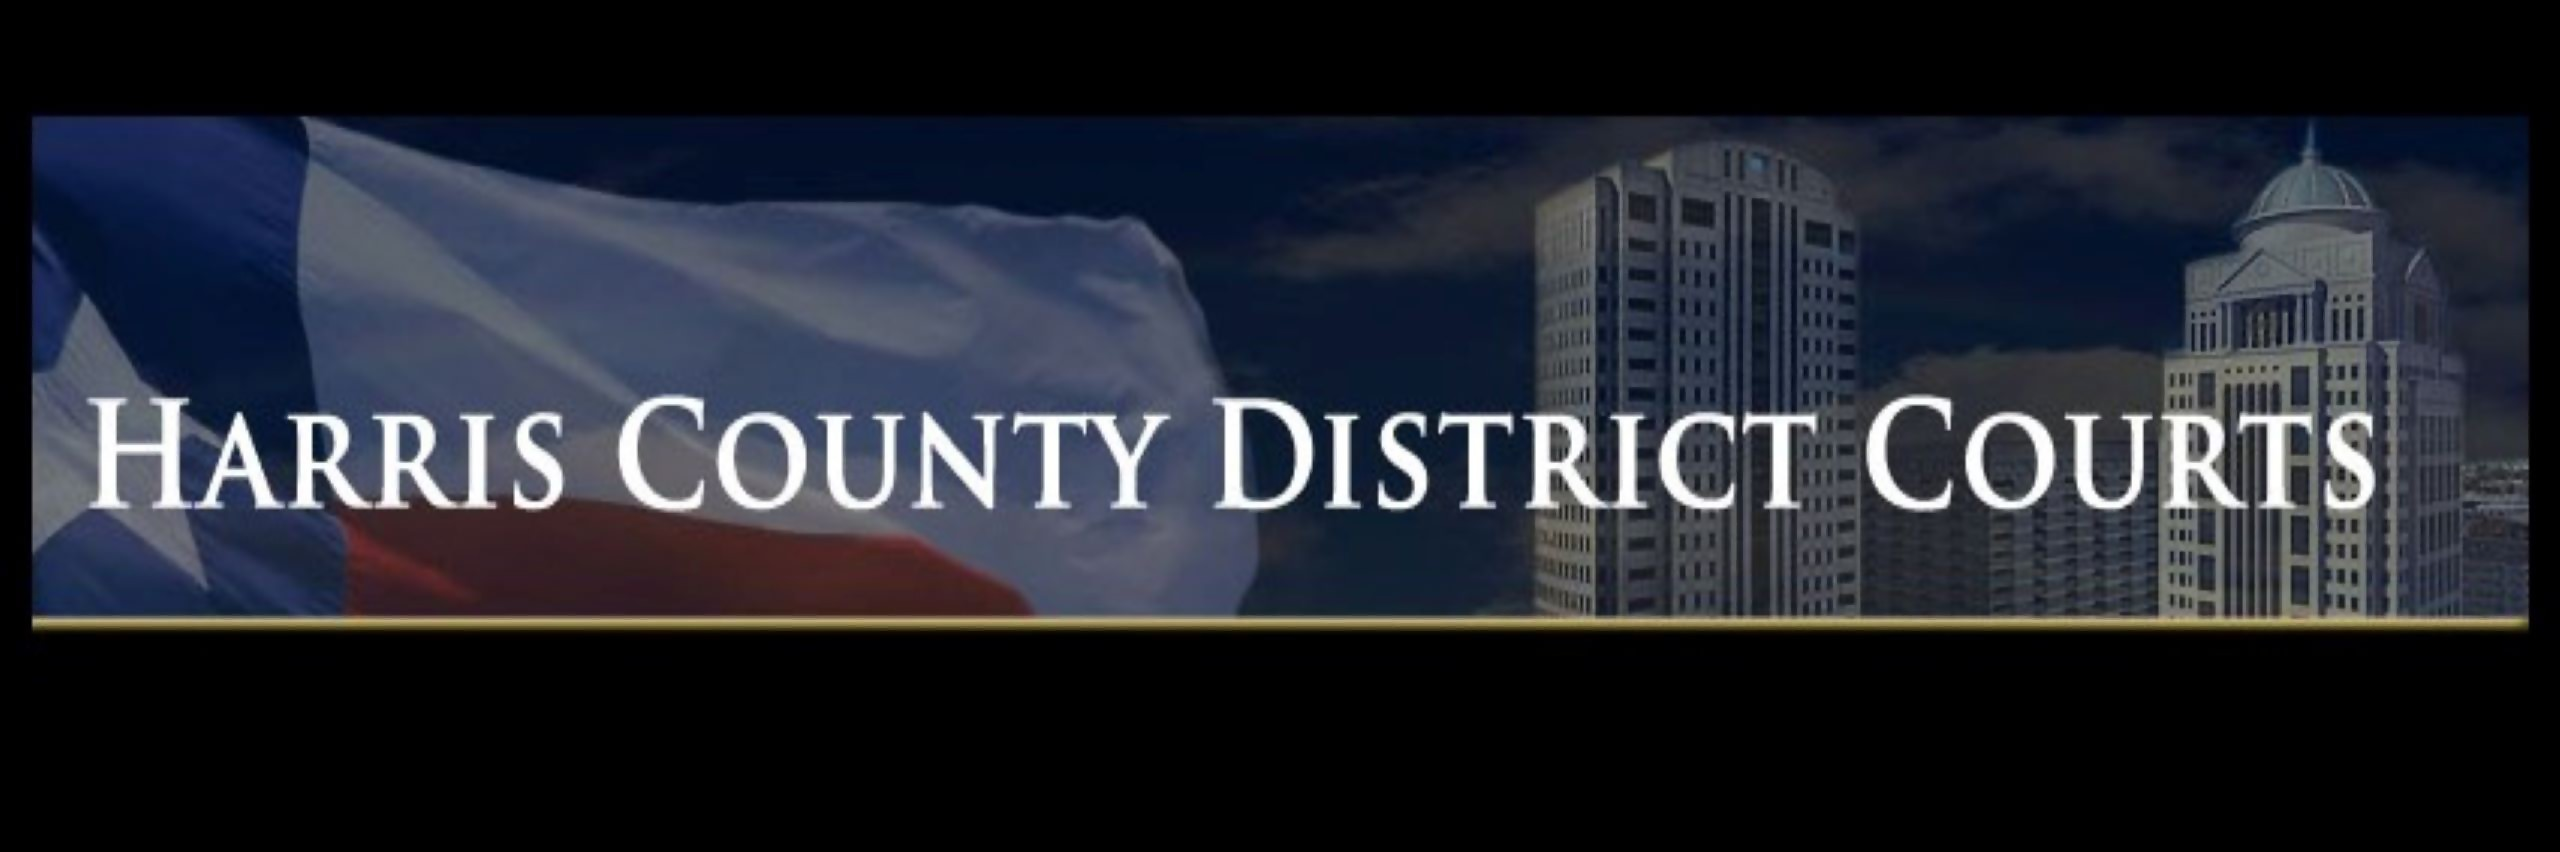 257th District Court - Live Stream